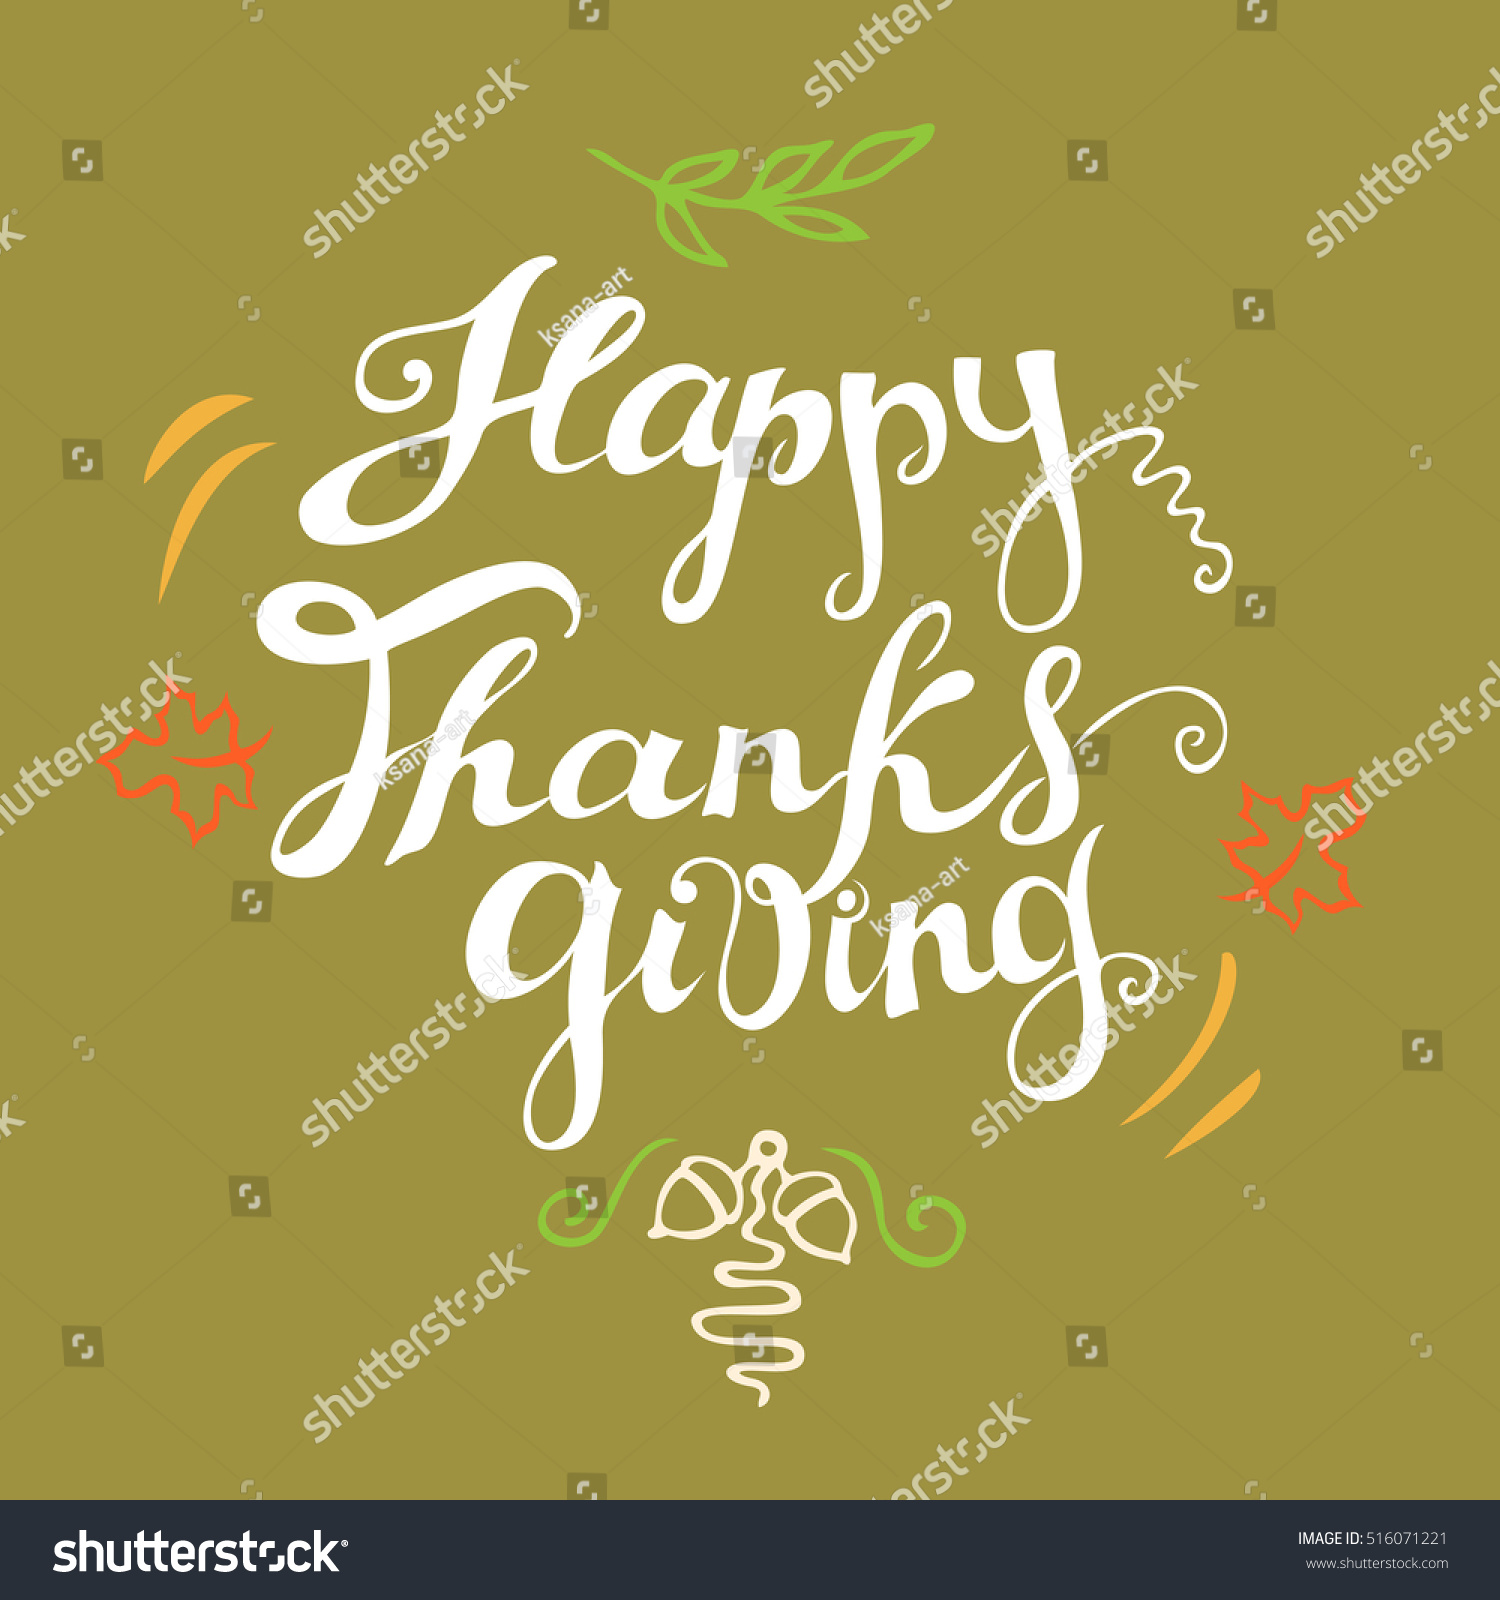 Happy Thanksgiving Card Hand Drawn Celebration Stock Vector Royalty